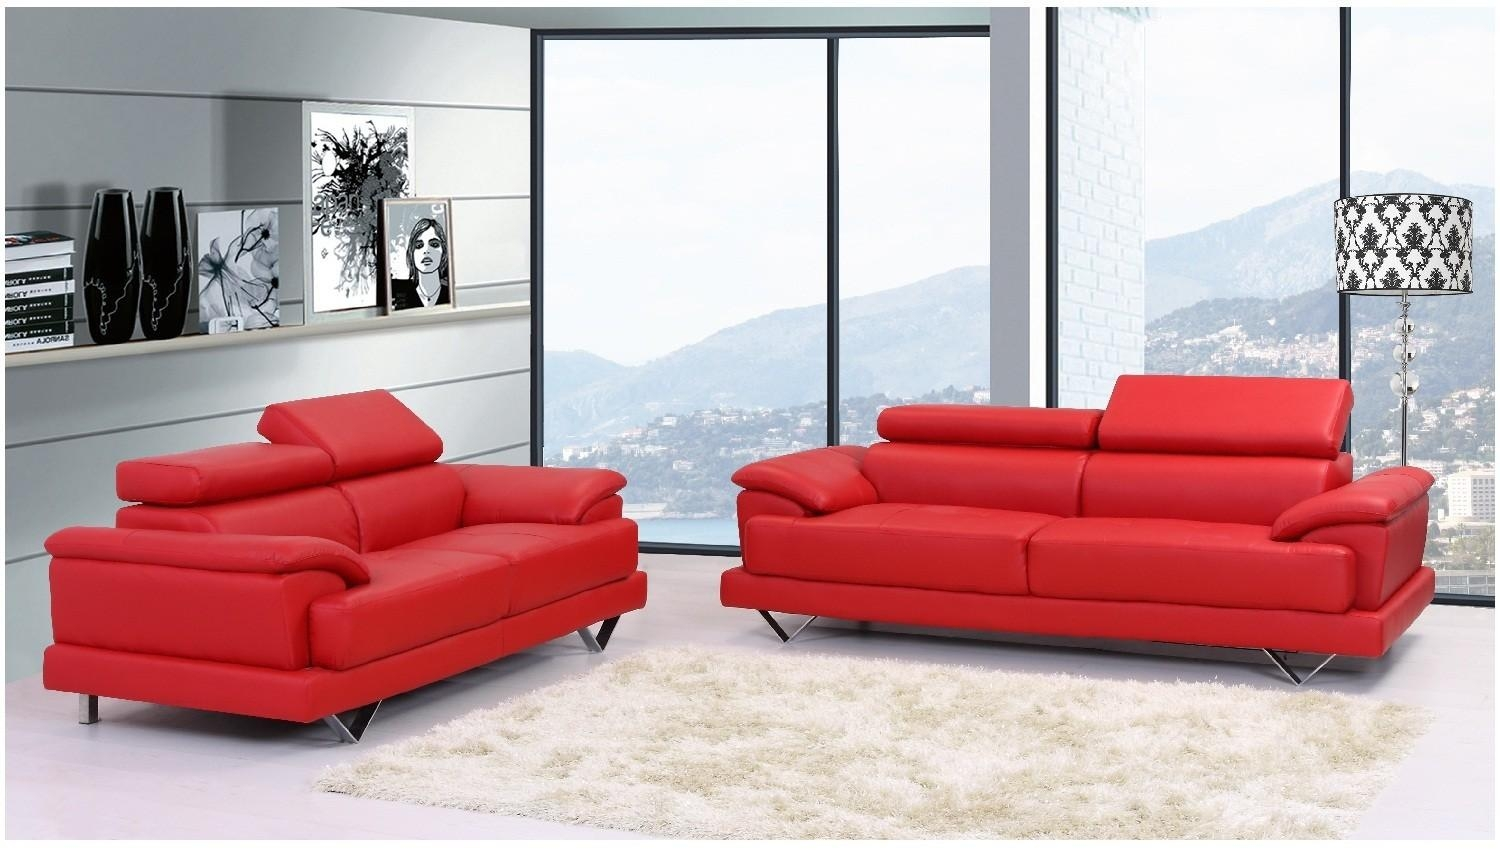 Red Furniture Ideas 20 Best Ideas Dark Red Leather Couches Sofa Ideas